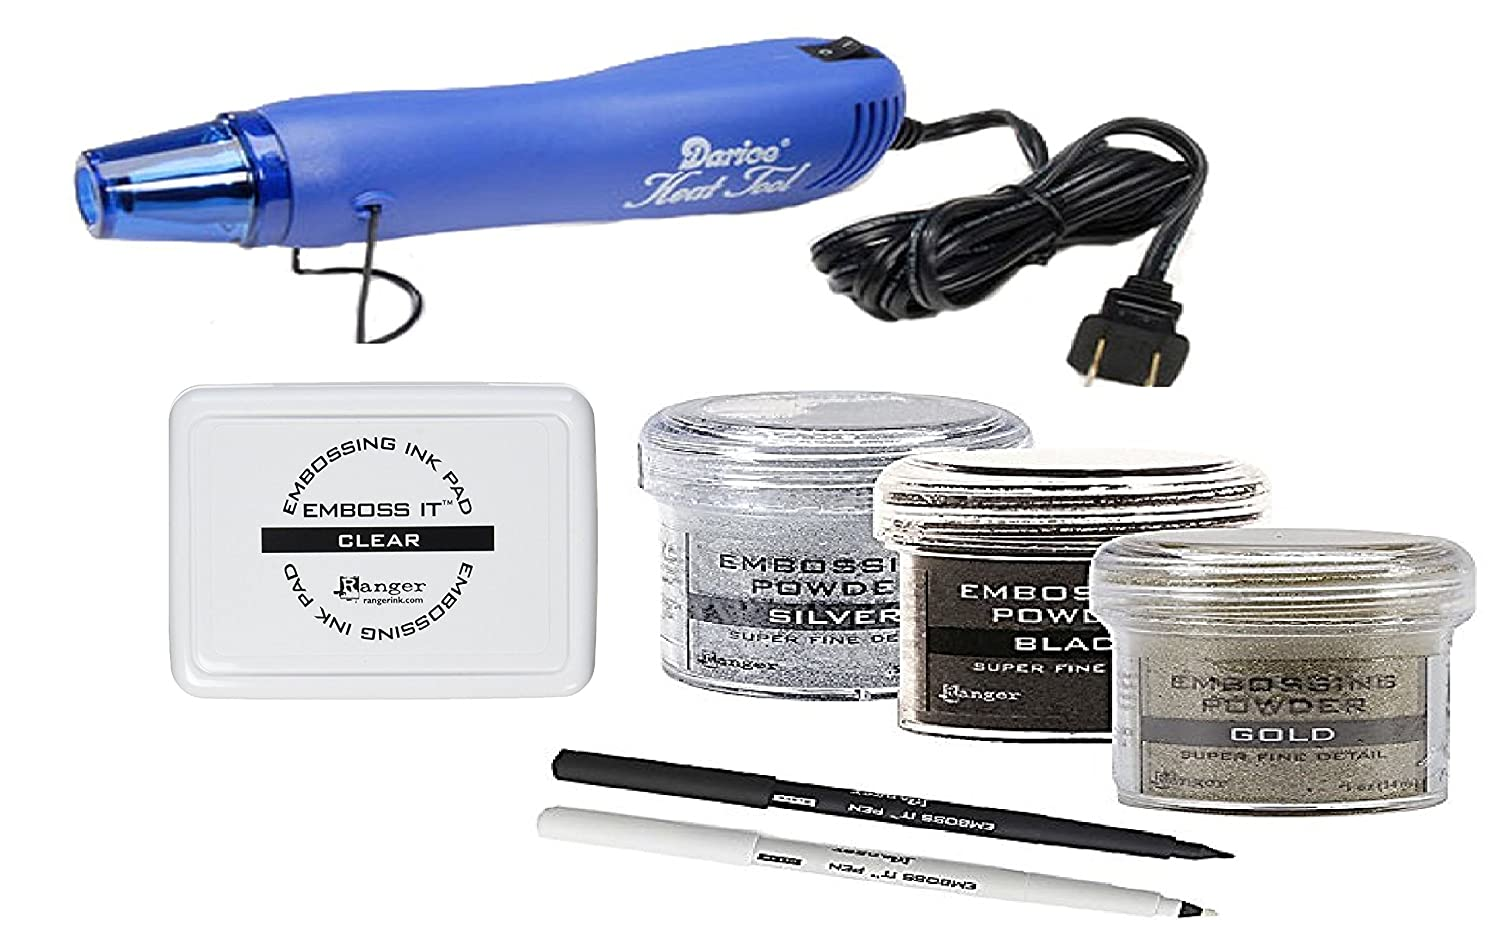 Embossing Kit - 3 Ranger Super Fine Embossing Powder with Two Inkssentials stays on ink Embossing Pen Black And Clear, Darice Embossing Heat Gun and Ranger Embossing Pad Ranger and Darice